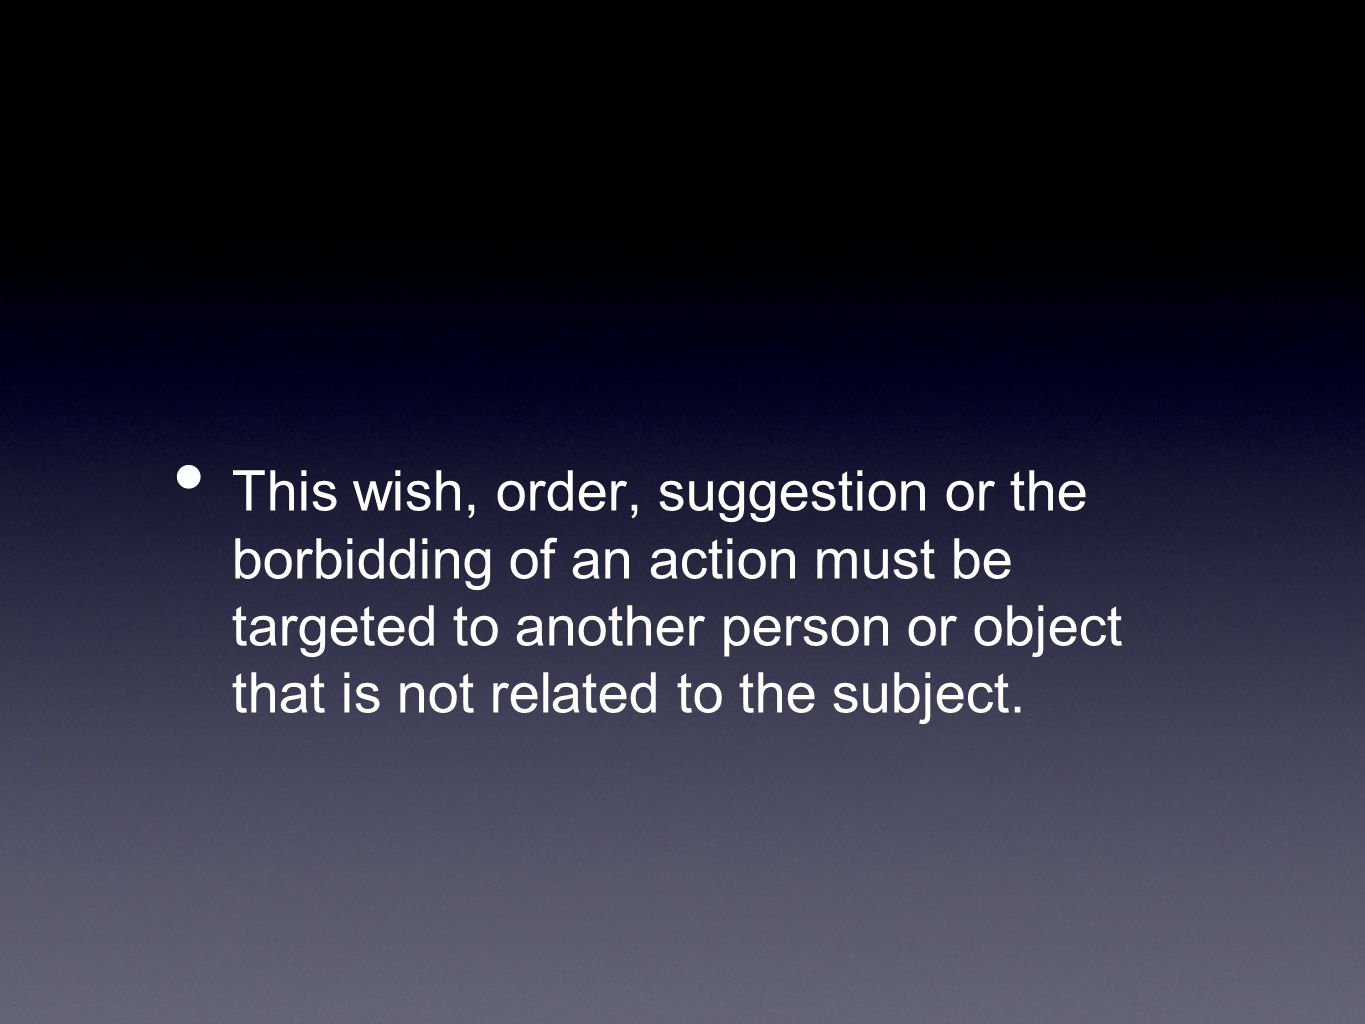 This wish, order, suggestion or the borbidding of an action must be targeted to another person or object that is not related to the subject.